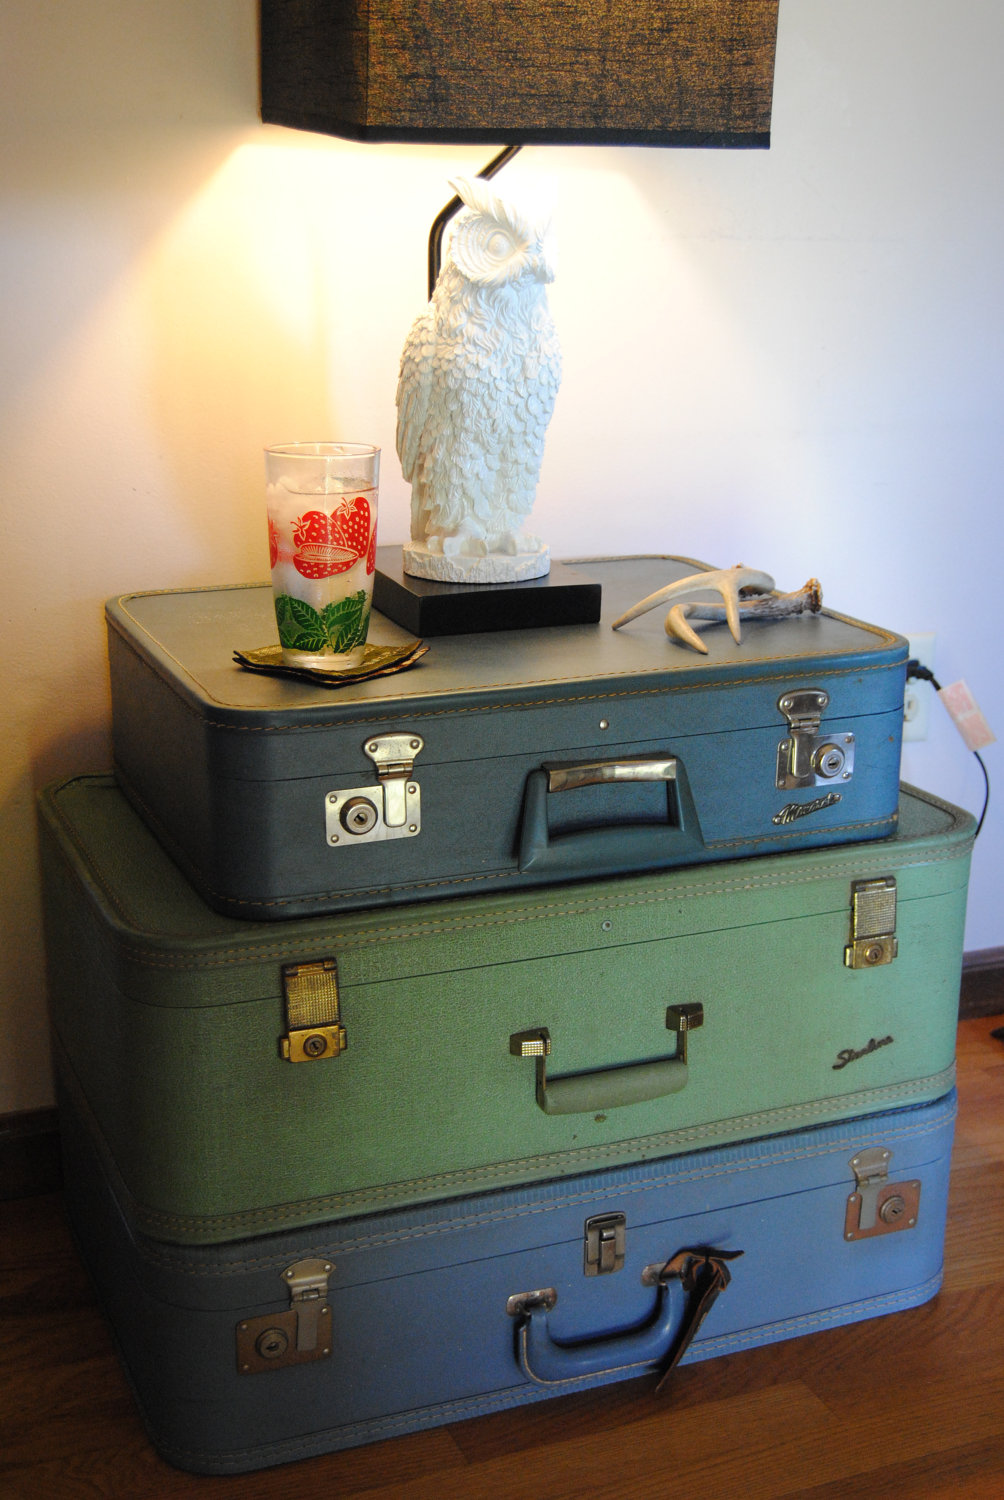 stacked suitcase table - auntsisterspicks, $90